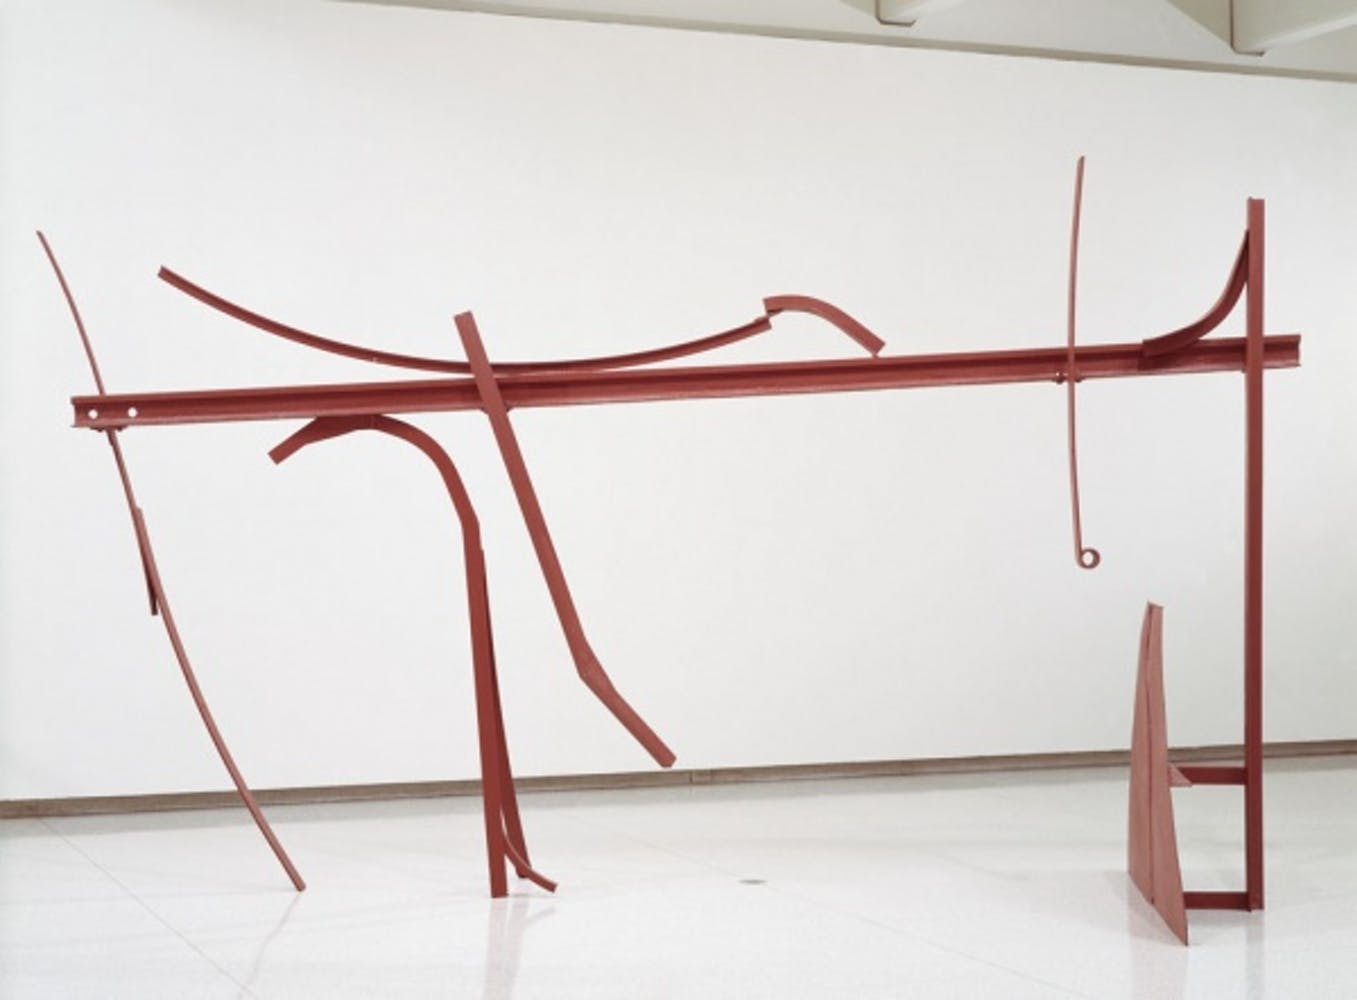 Anthony Caro, Sculpture Three, 1962, 1962